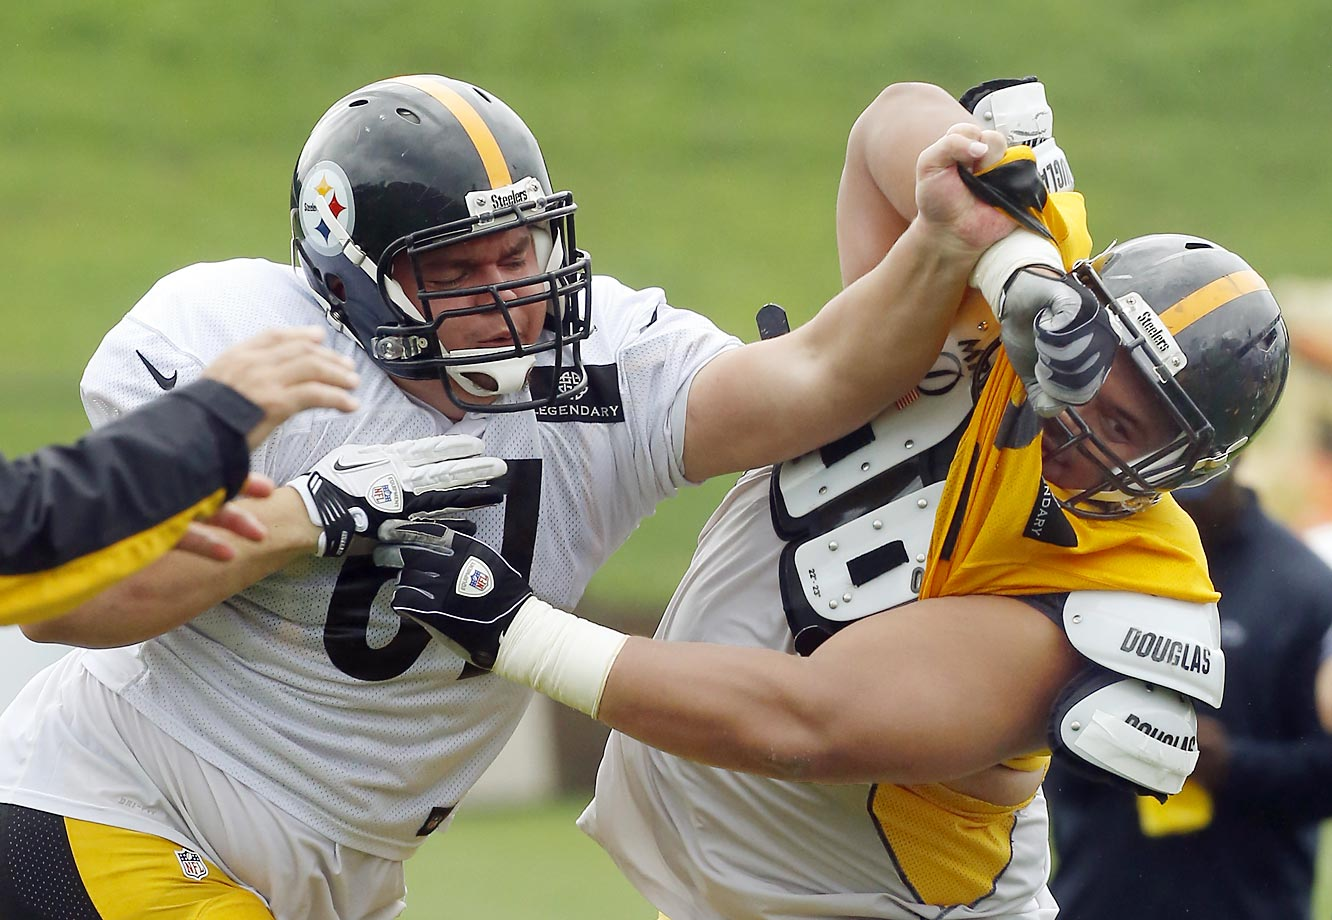 NFL training camps are well underway. In Latrobe, Pa., Pittsburgh Steelers center Chris Elkins (left) tries his hand at blocking defensive tackle Hebron Fangupo (92) during a practice drill.